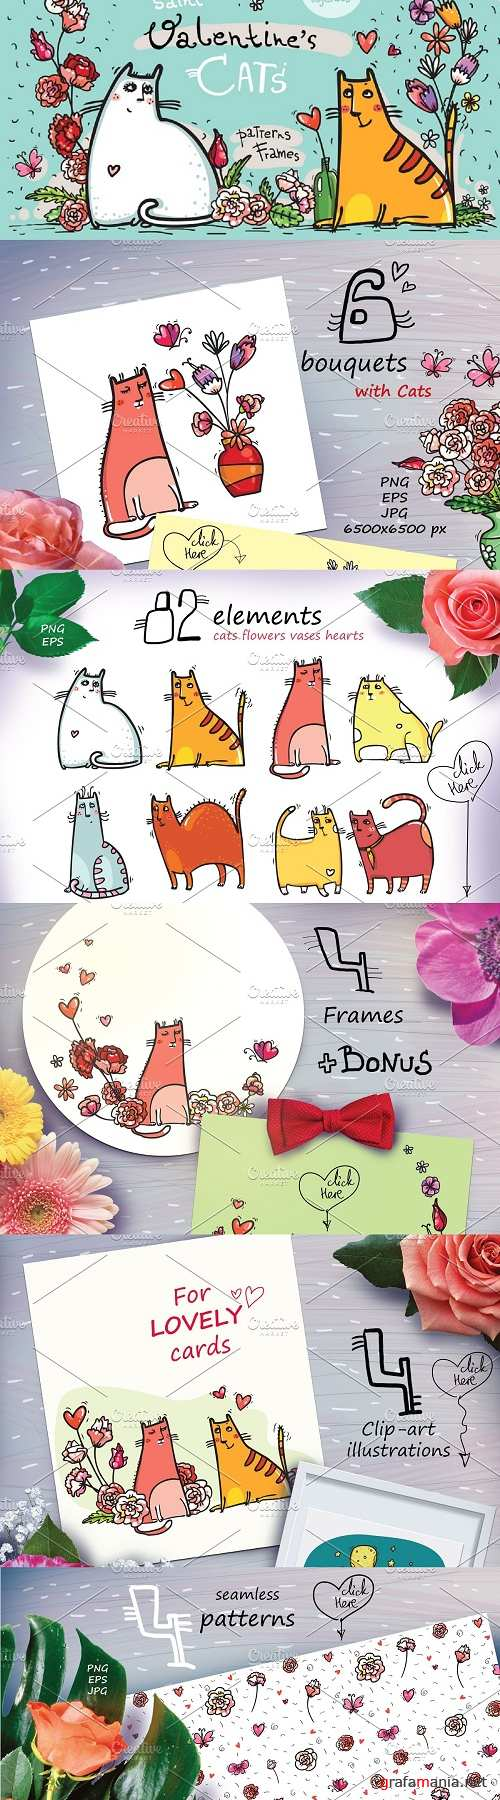 St.Valentine's Cats - 82 elements - 2250515